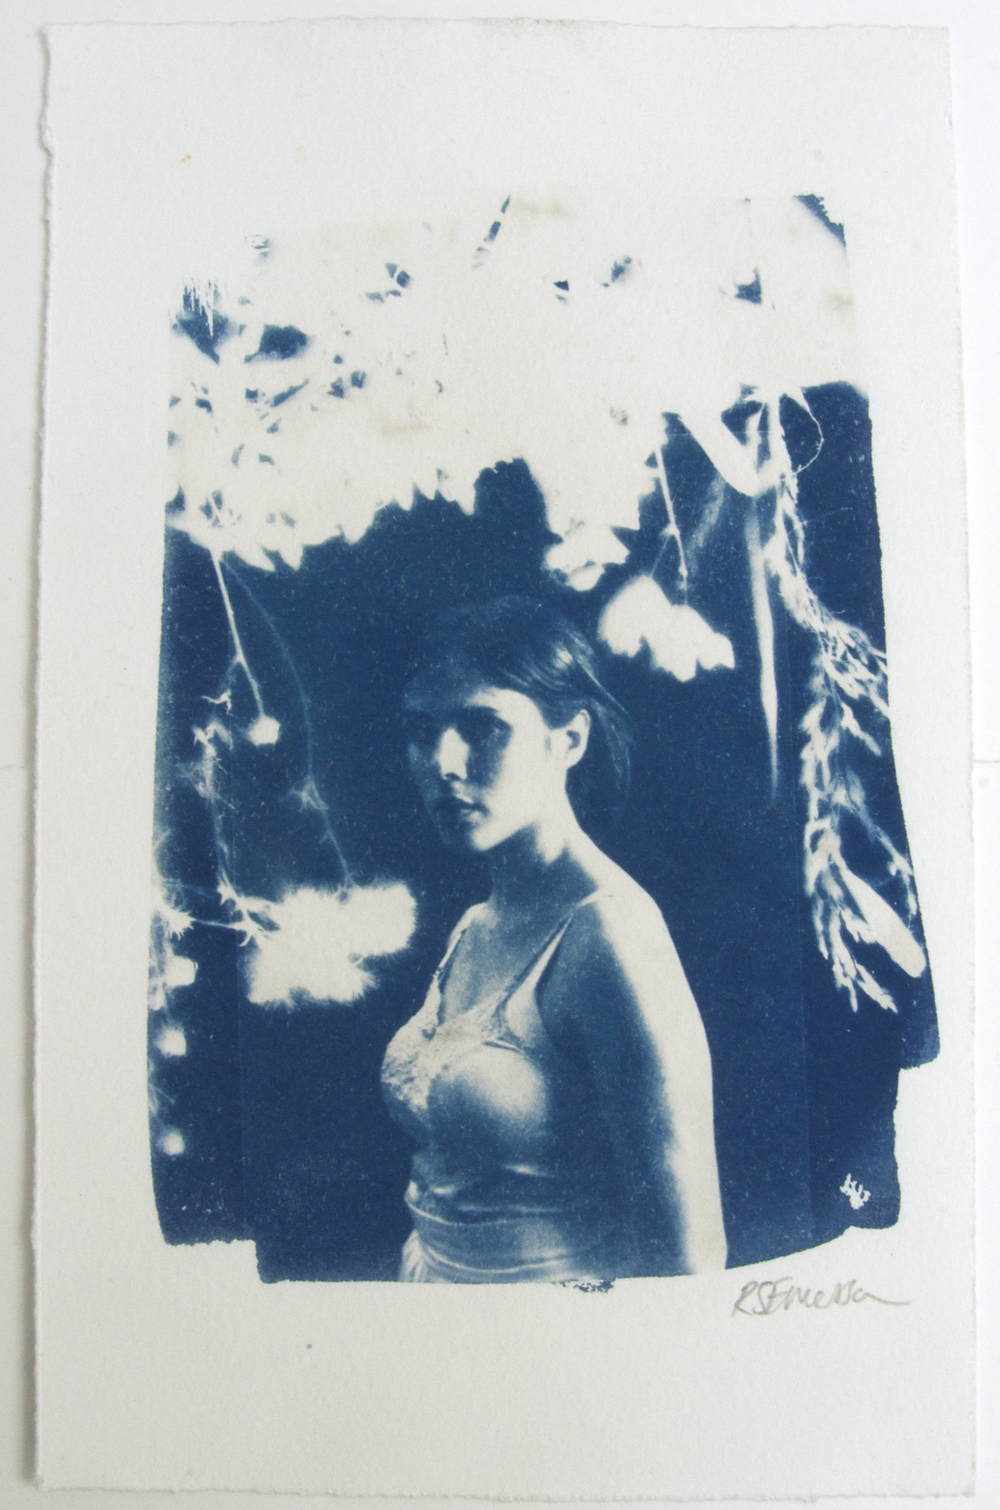 Night Walking  – Original + 2 AP's Cyanotype on paper, framed Artwork: 16.6 x 26.8 cm (34 x 48 cm framed) 2015